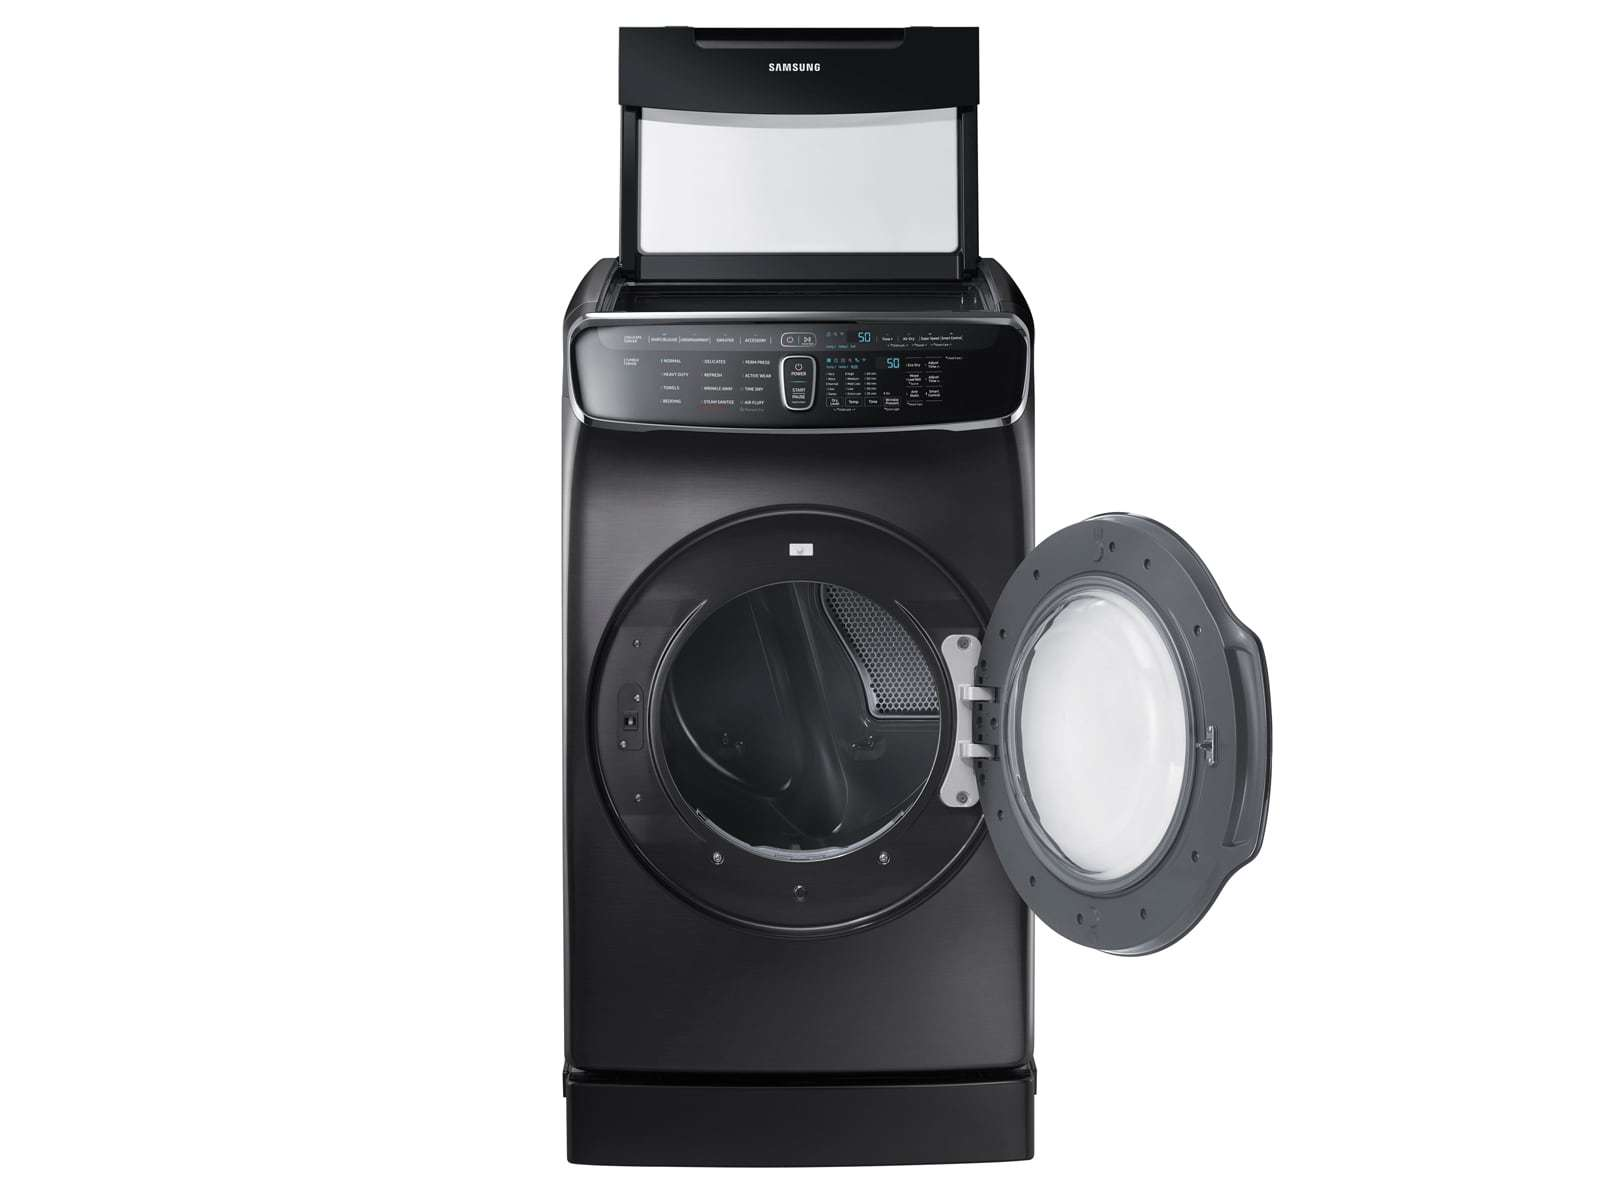 Samsung FlexDry 7 5-cu ft Electric Dryer (Black stainless steel